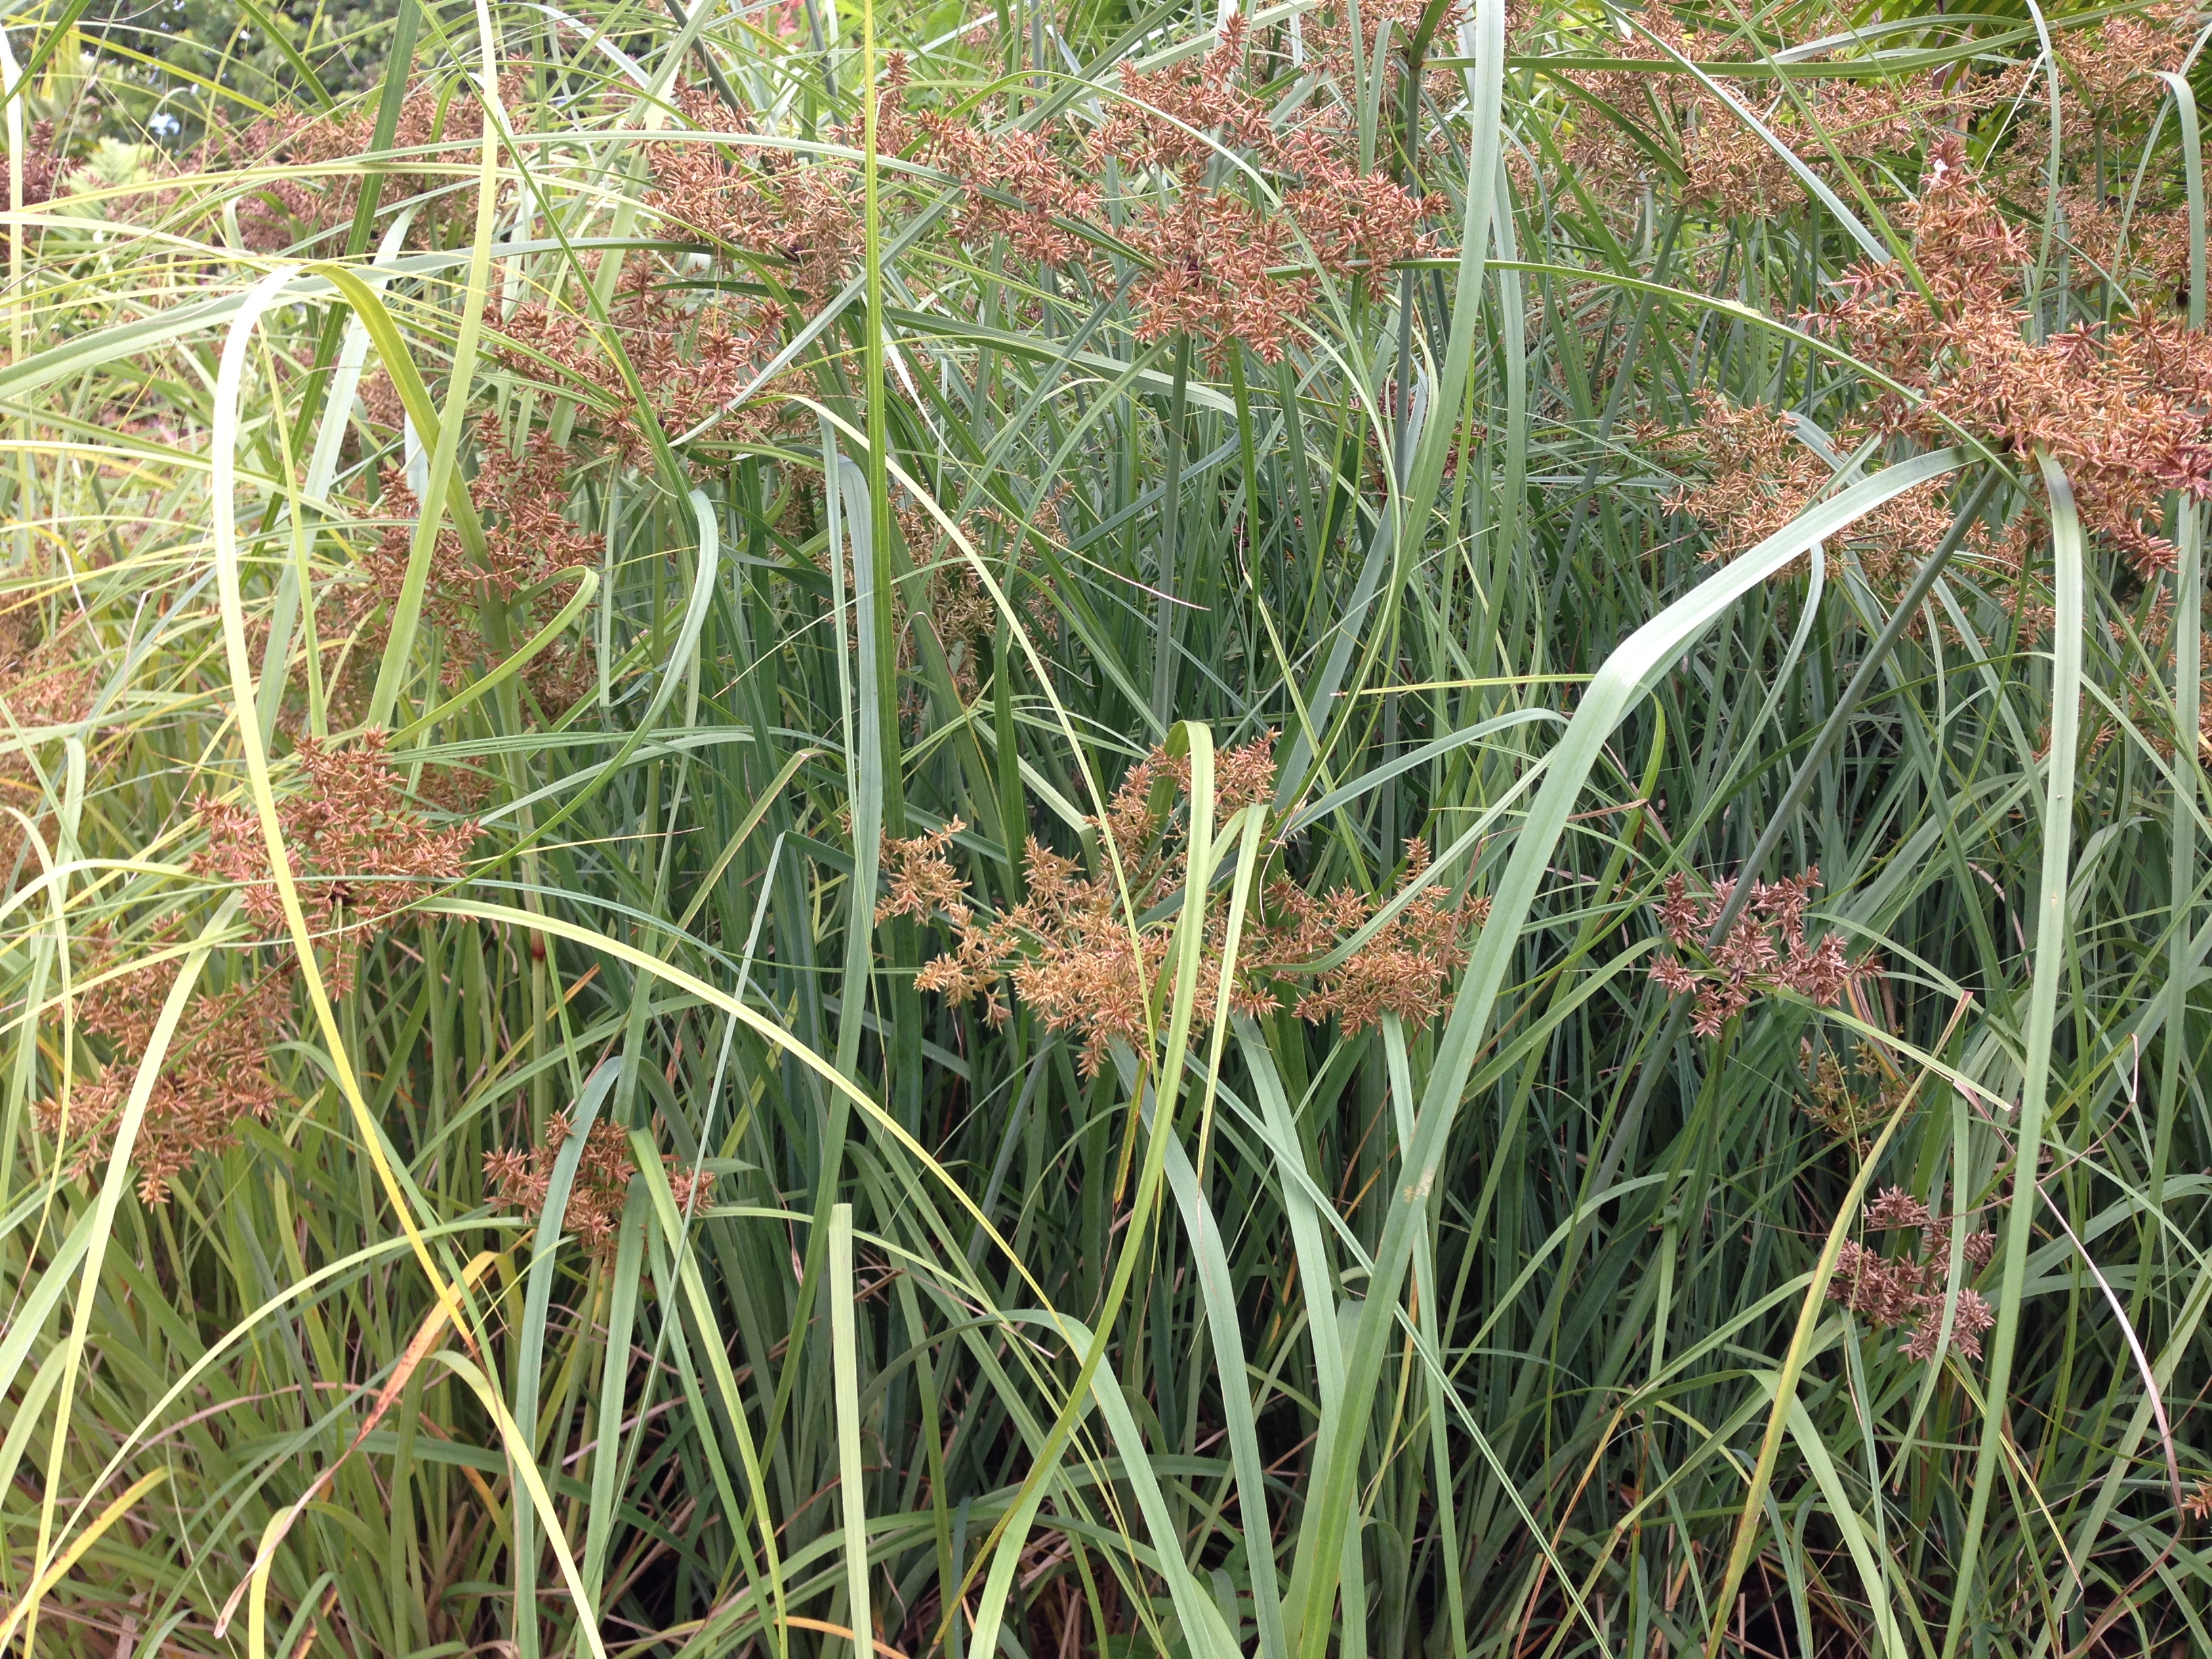 'Ahu'awa Native Hawaiian Sedge